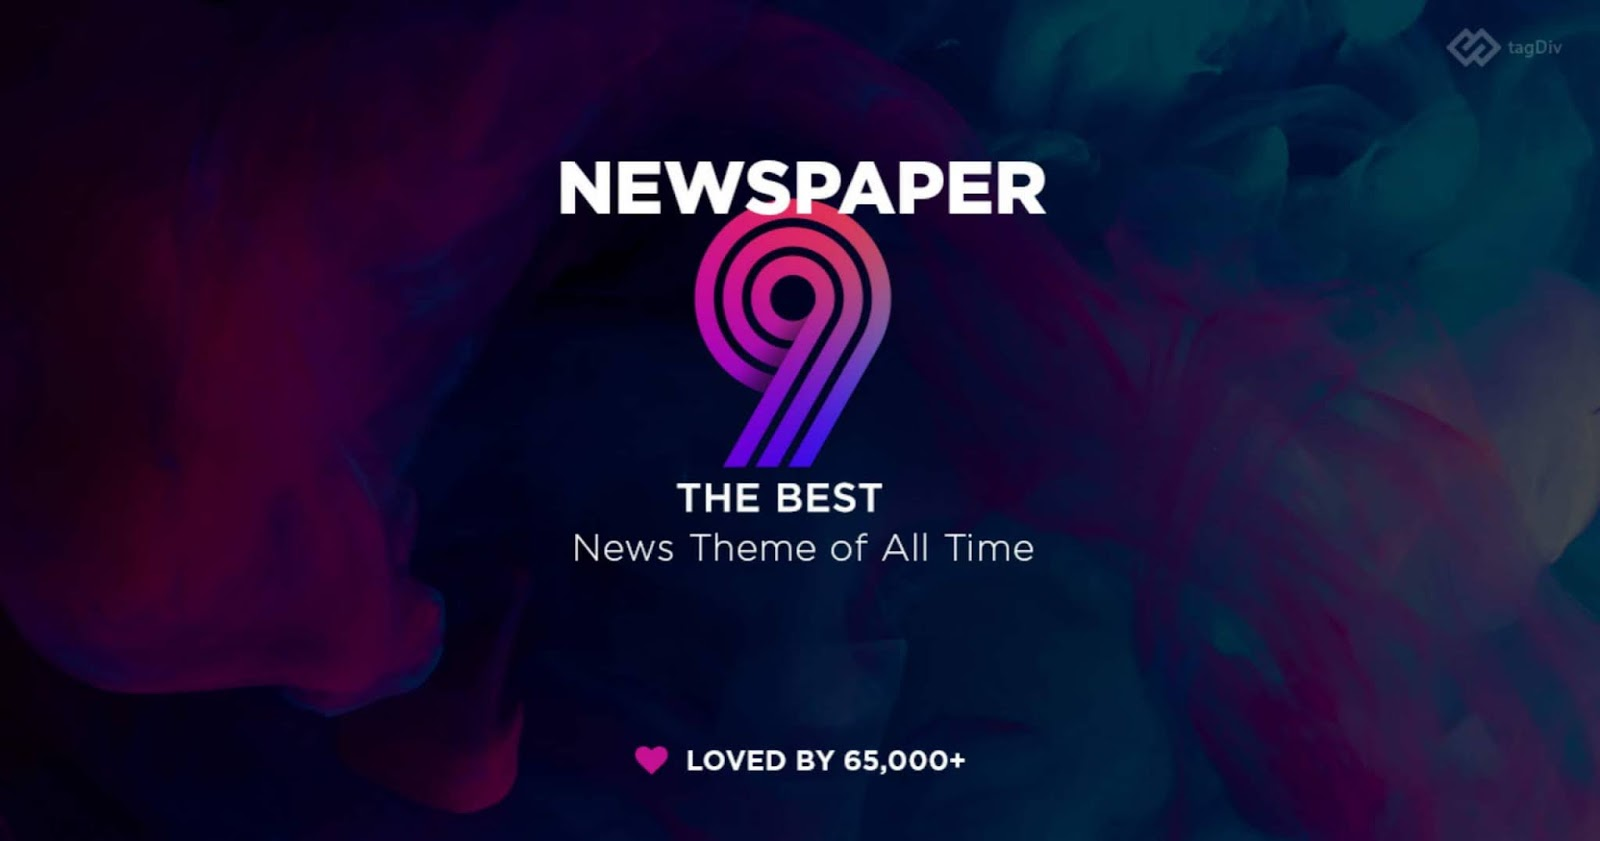 Newspaper 9 Premium Theme For Blogger Download Free